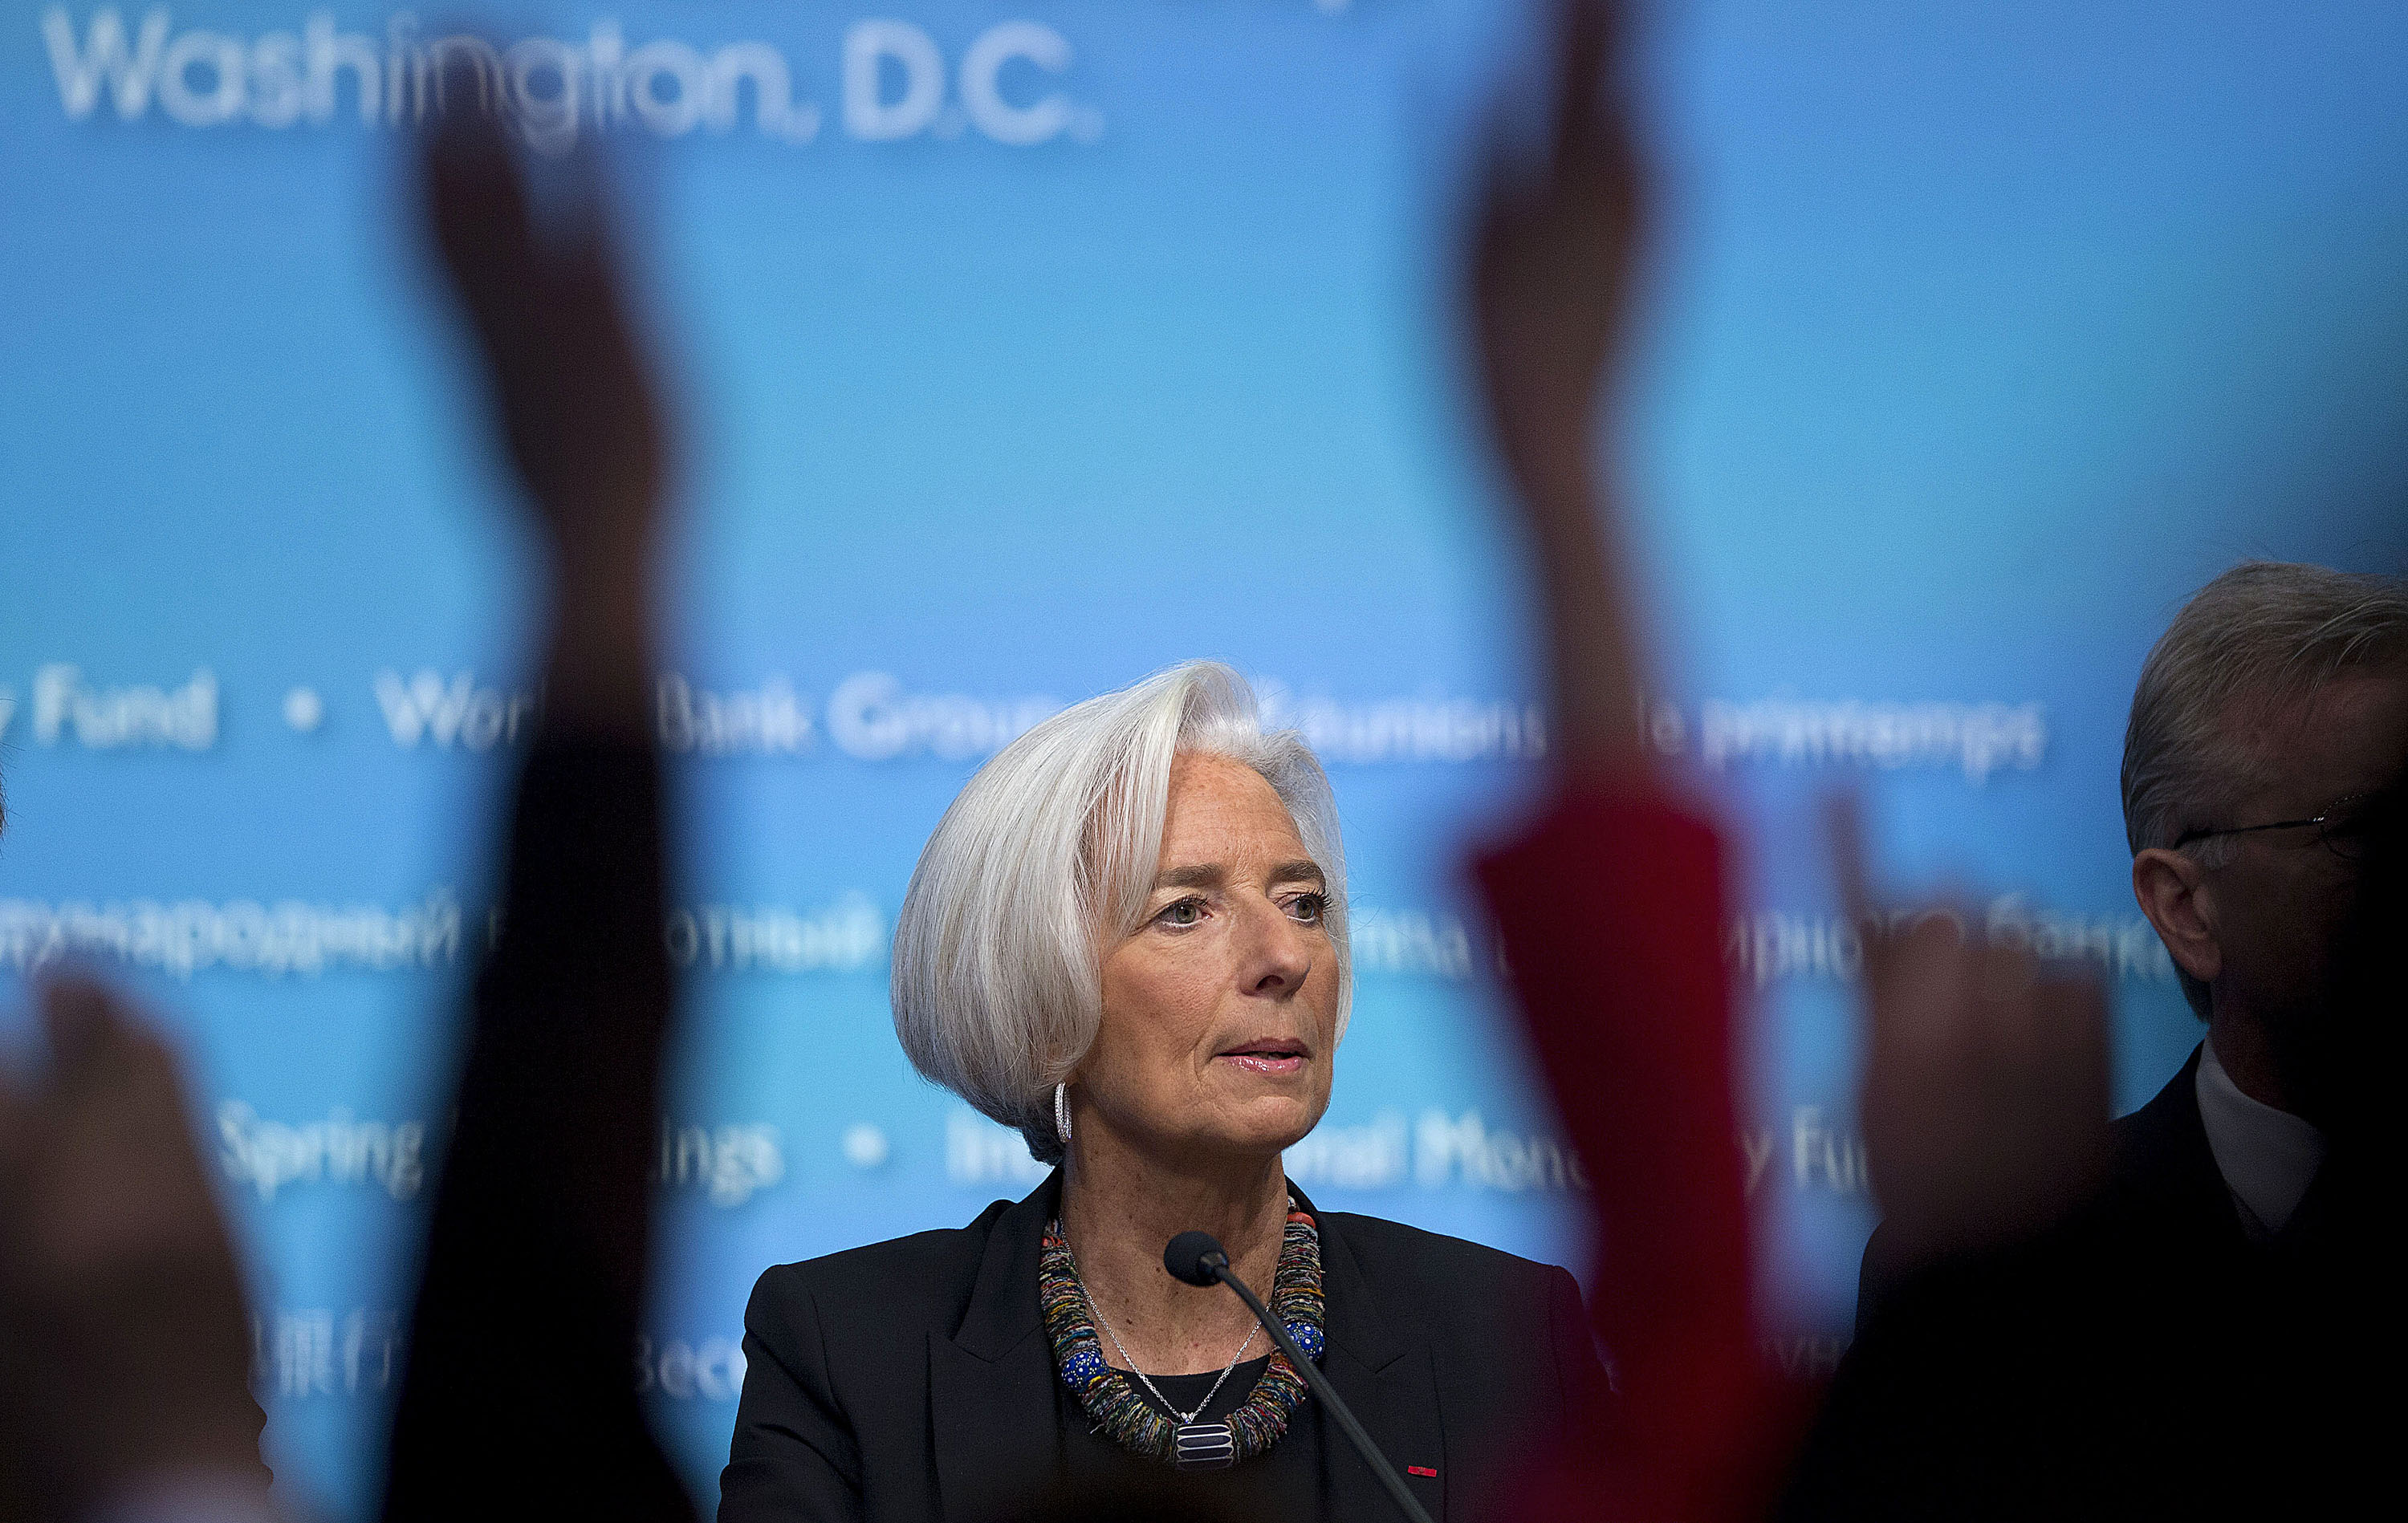 IMF cuts U.S. growth outlook, sees more scope for zero rates